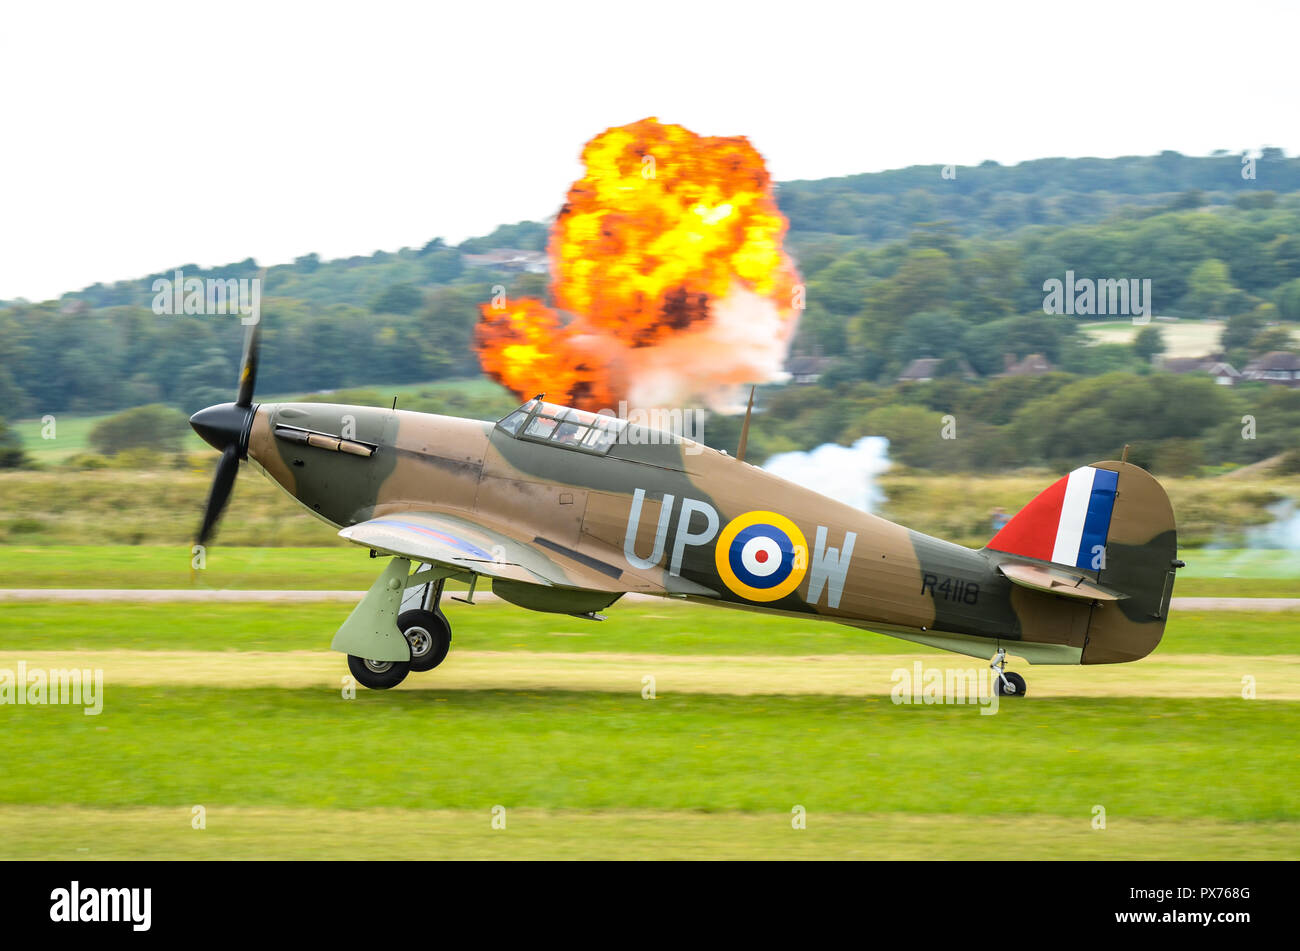 Hawker Hurricane Second World War fighter plane taking off at Shoreham Airshow with explosion during Battle of Britain scramble scenario. RAF - Stock Image